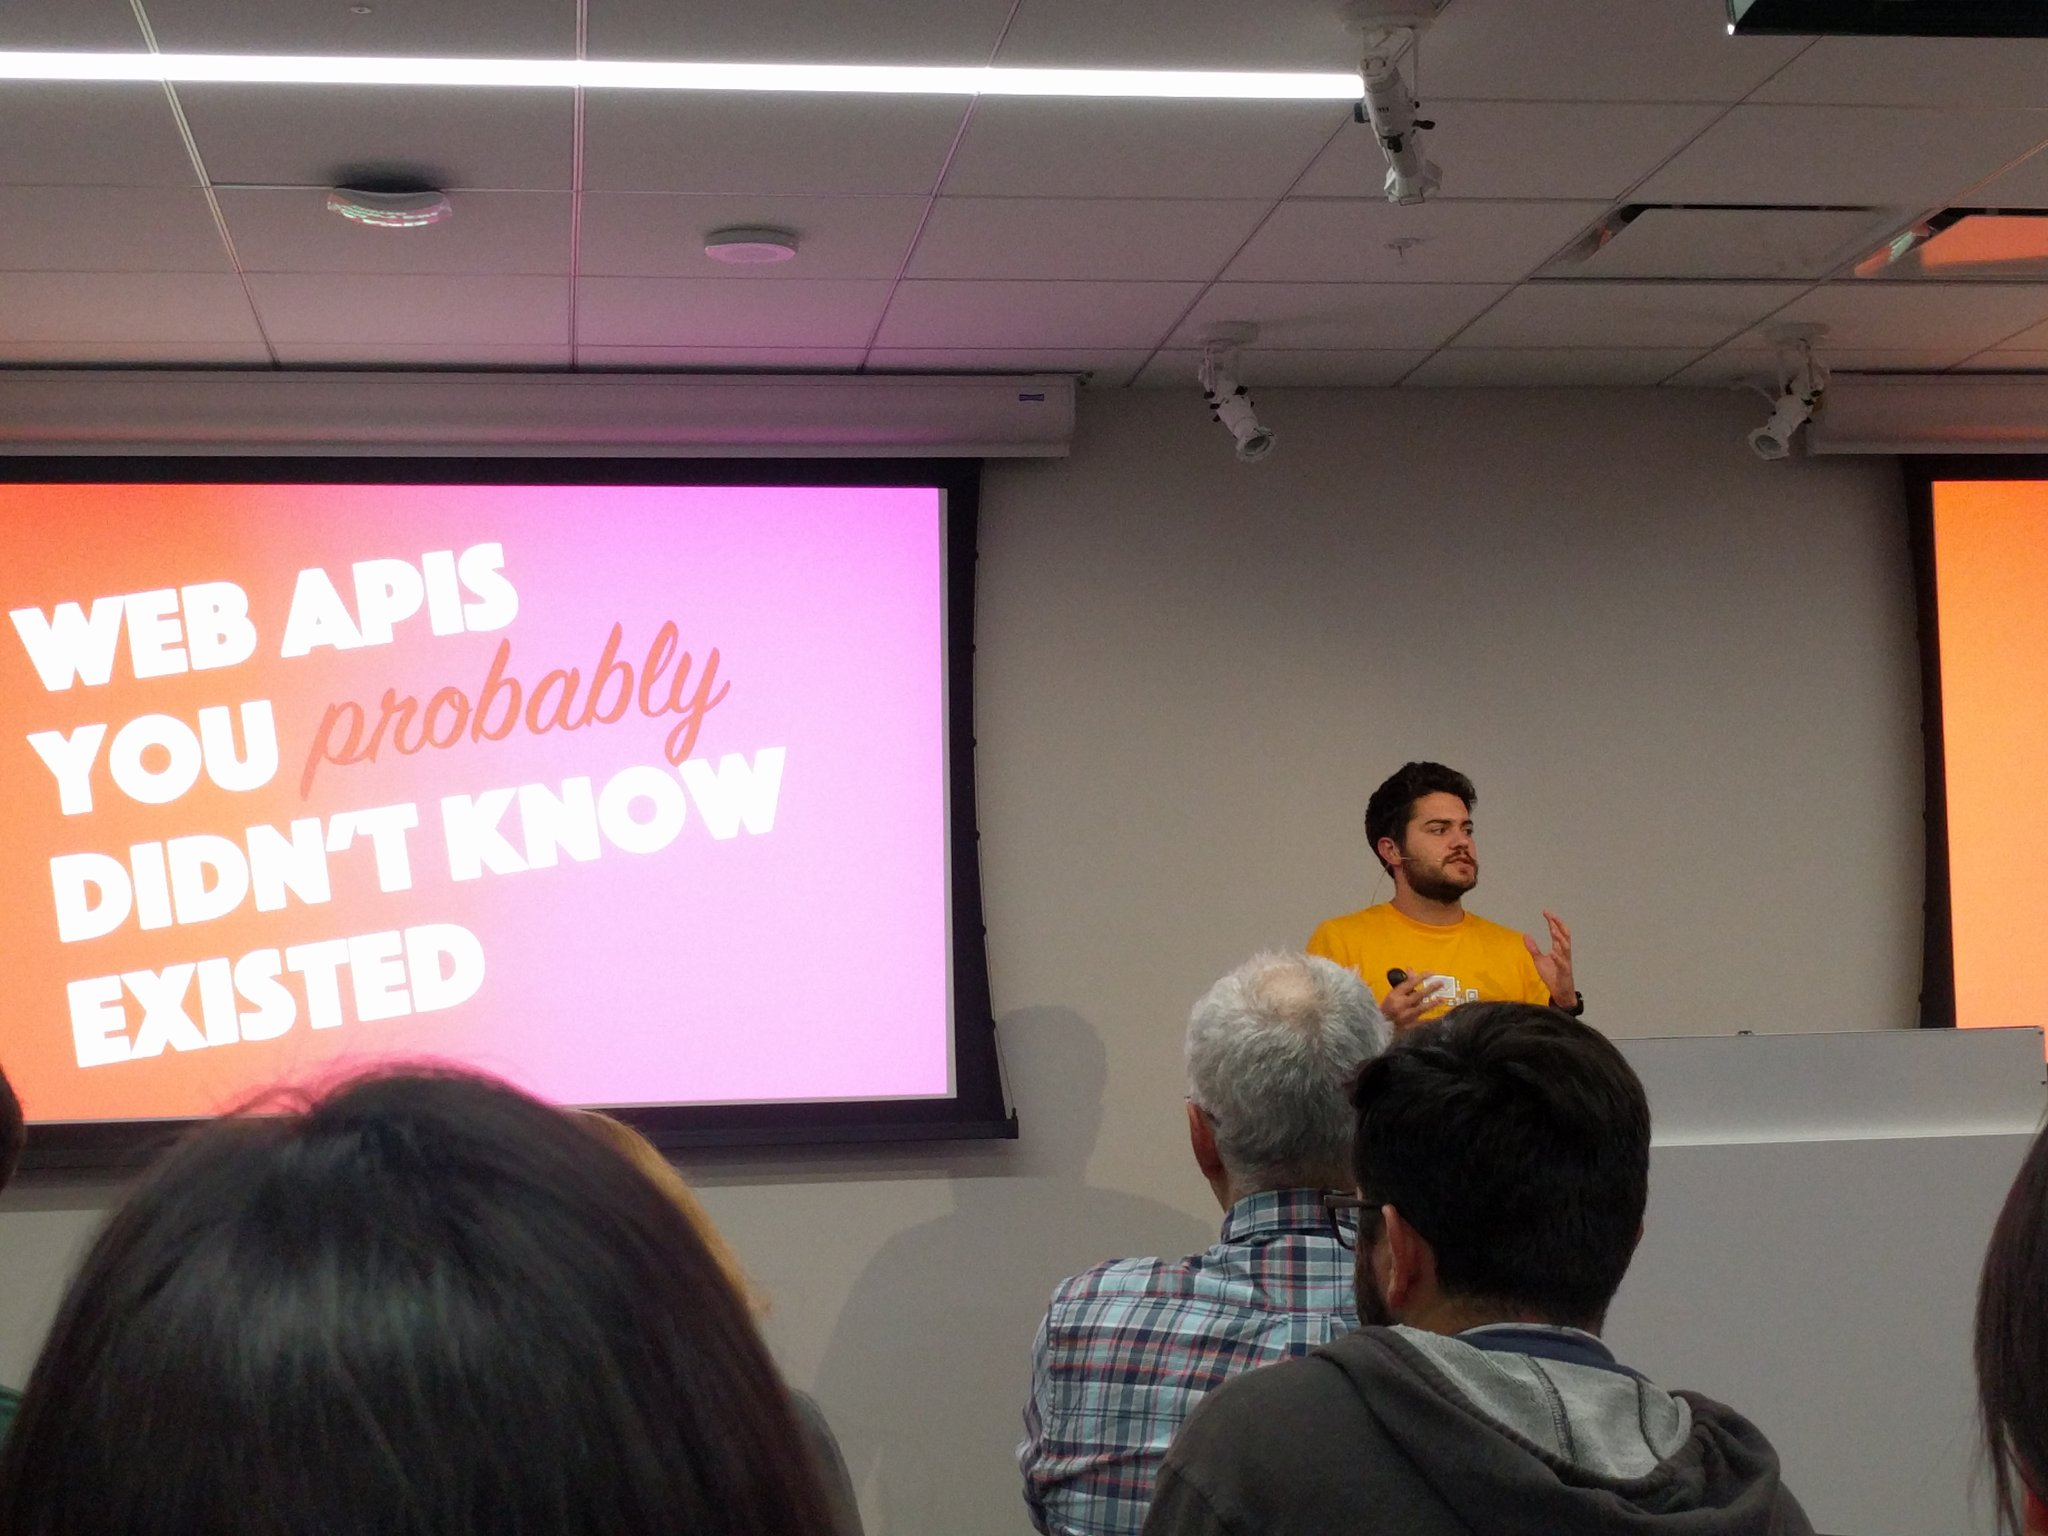 Hi @zenorocha, nice to see you in person finally, not on GitHub! #sfhtml5 https://t.co/TJYfvAeApR